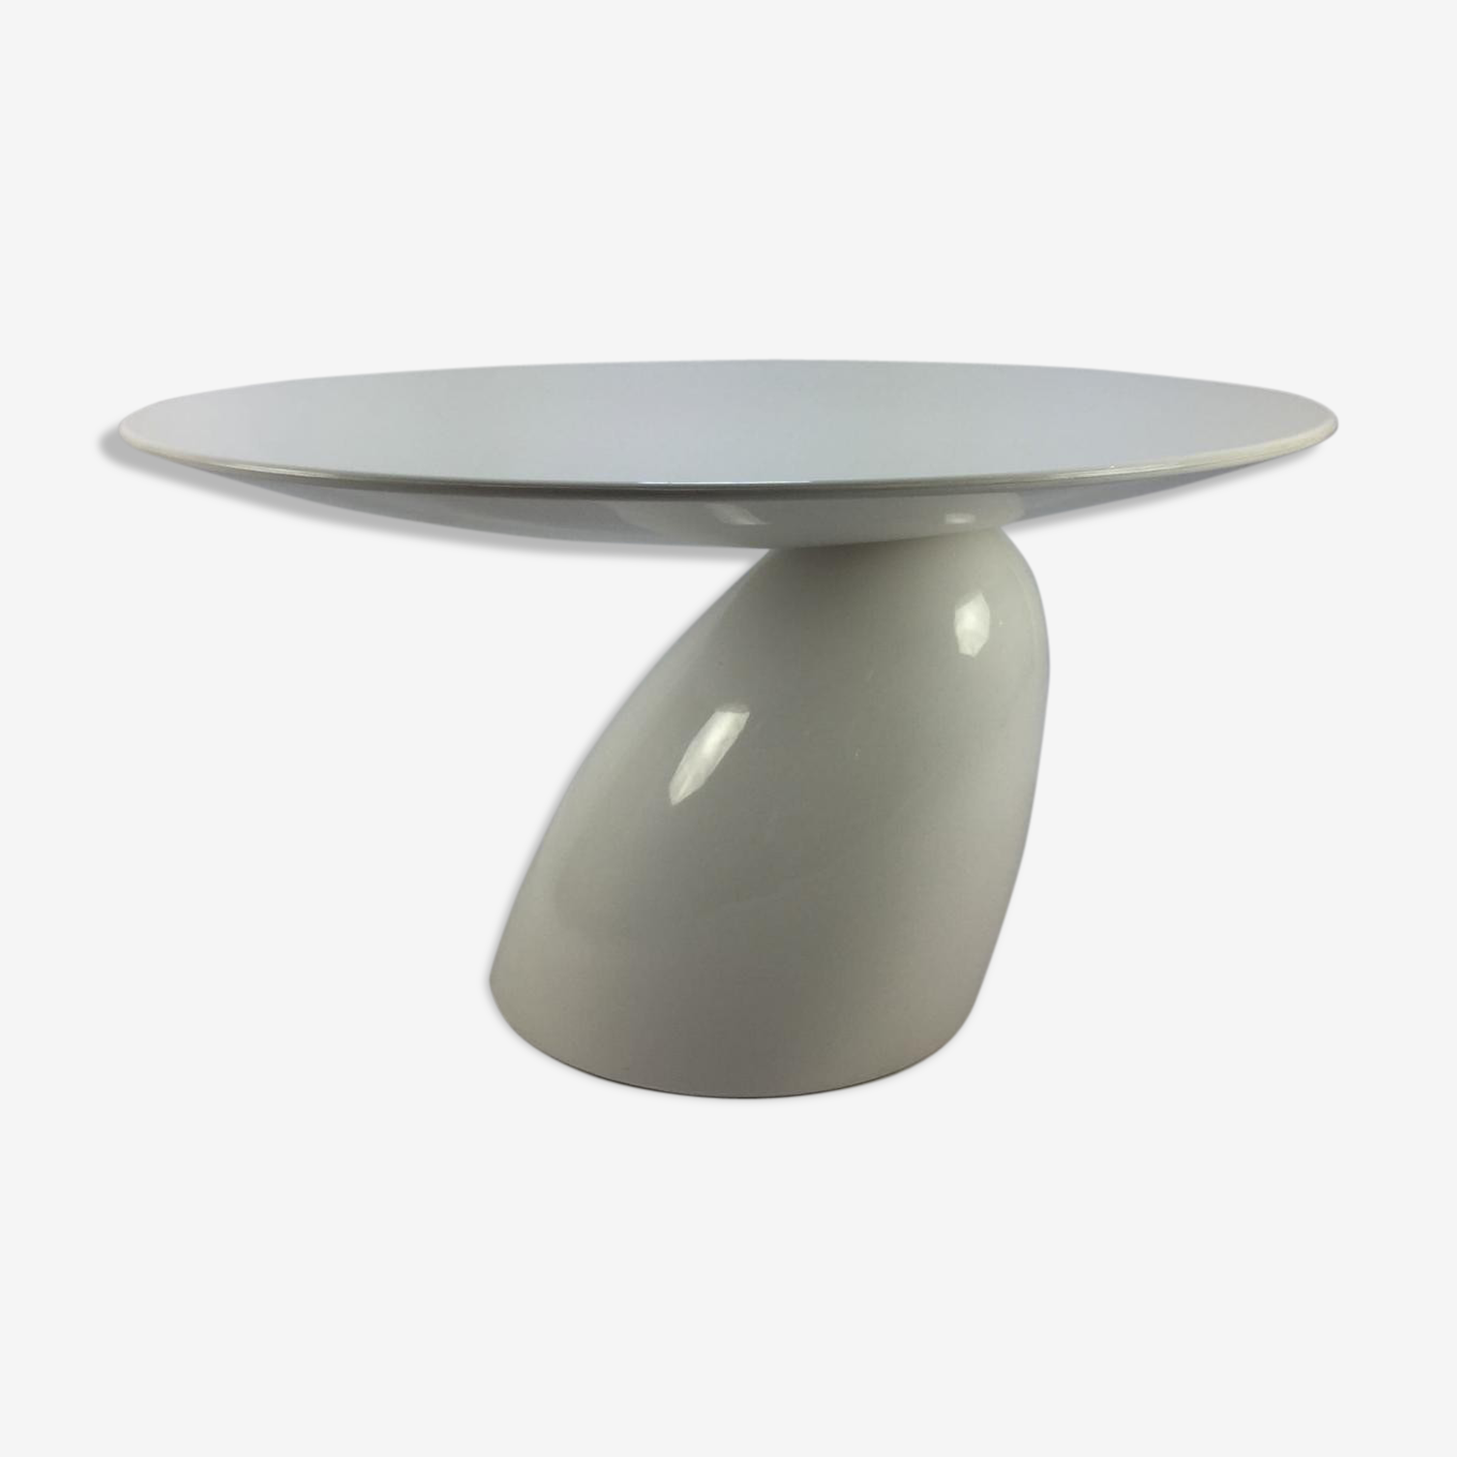 Dining table round parable by Eero Aarnio, 2004